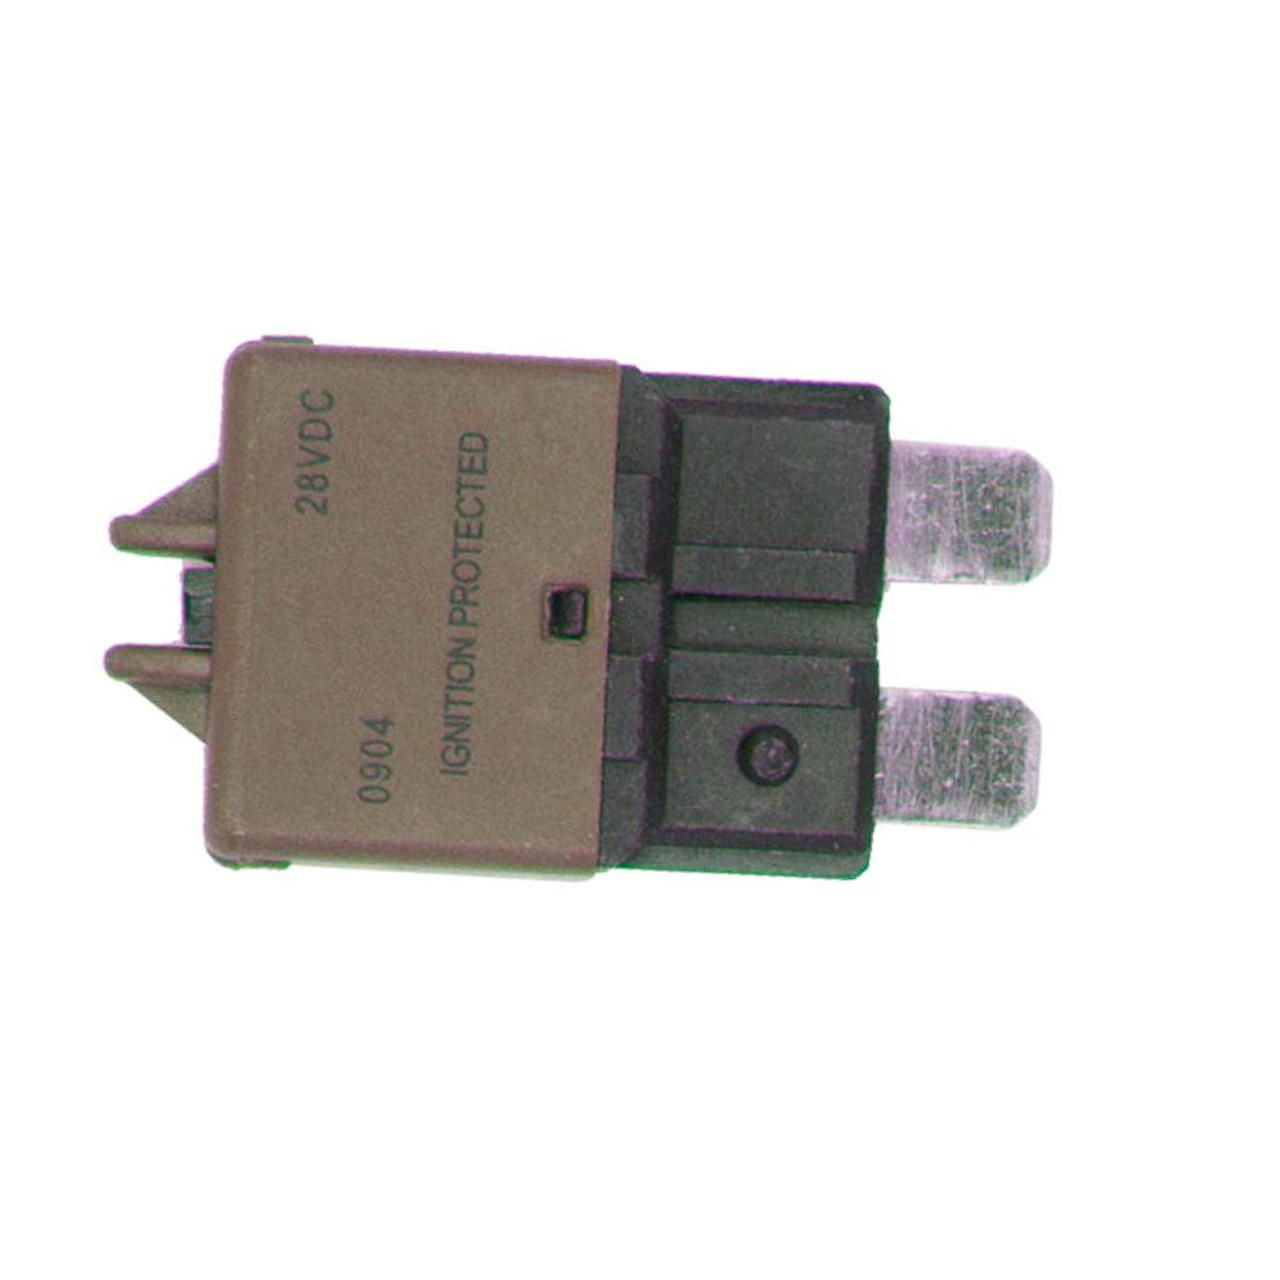 Buss 5 Amp Low Profile ATC//ATO Manual Reset Circuit Breaker